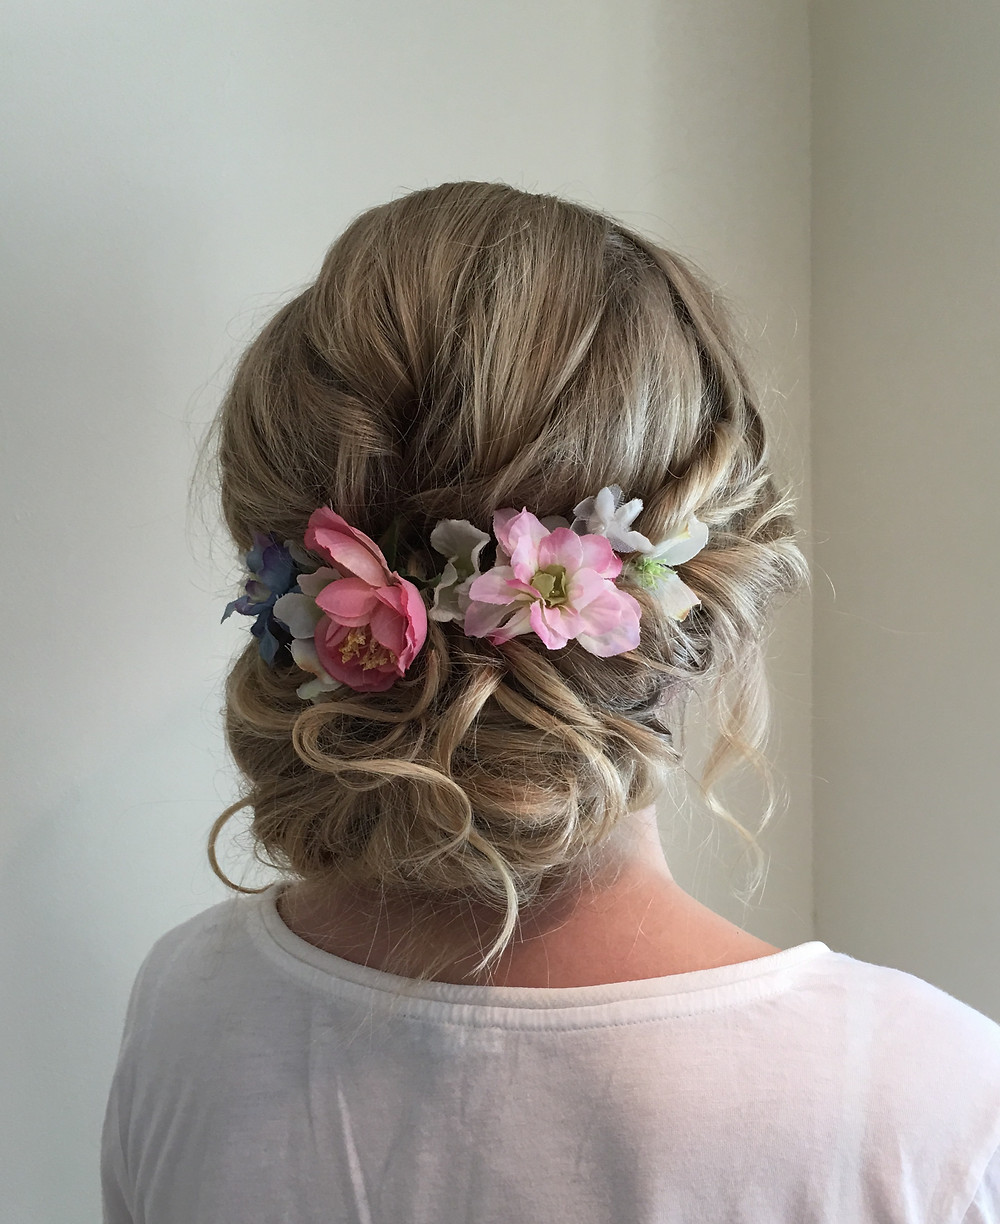 Messy wedding hair with flowers